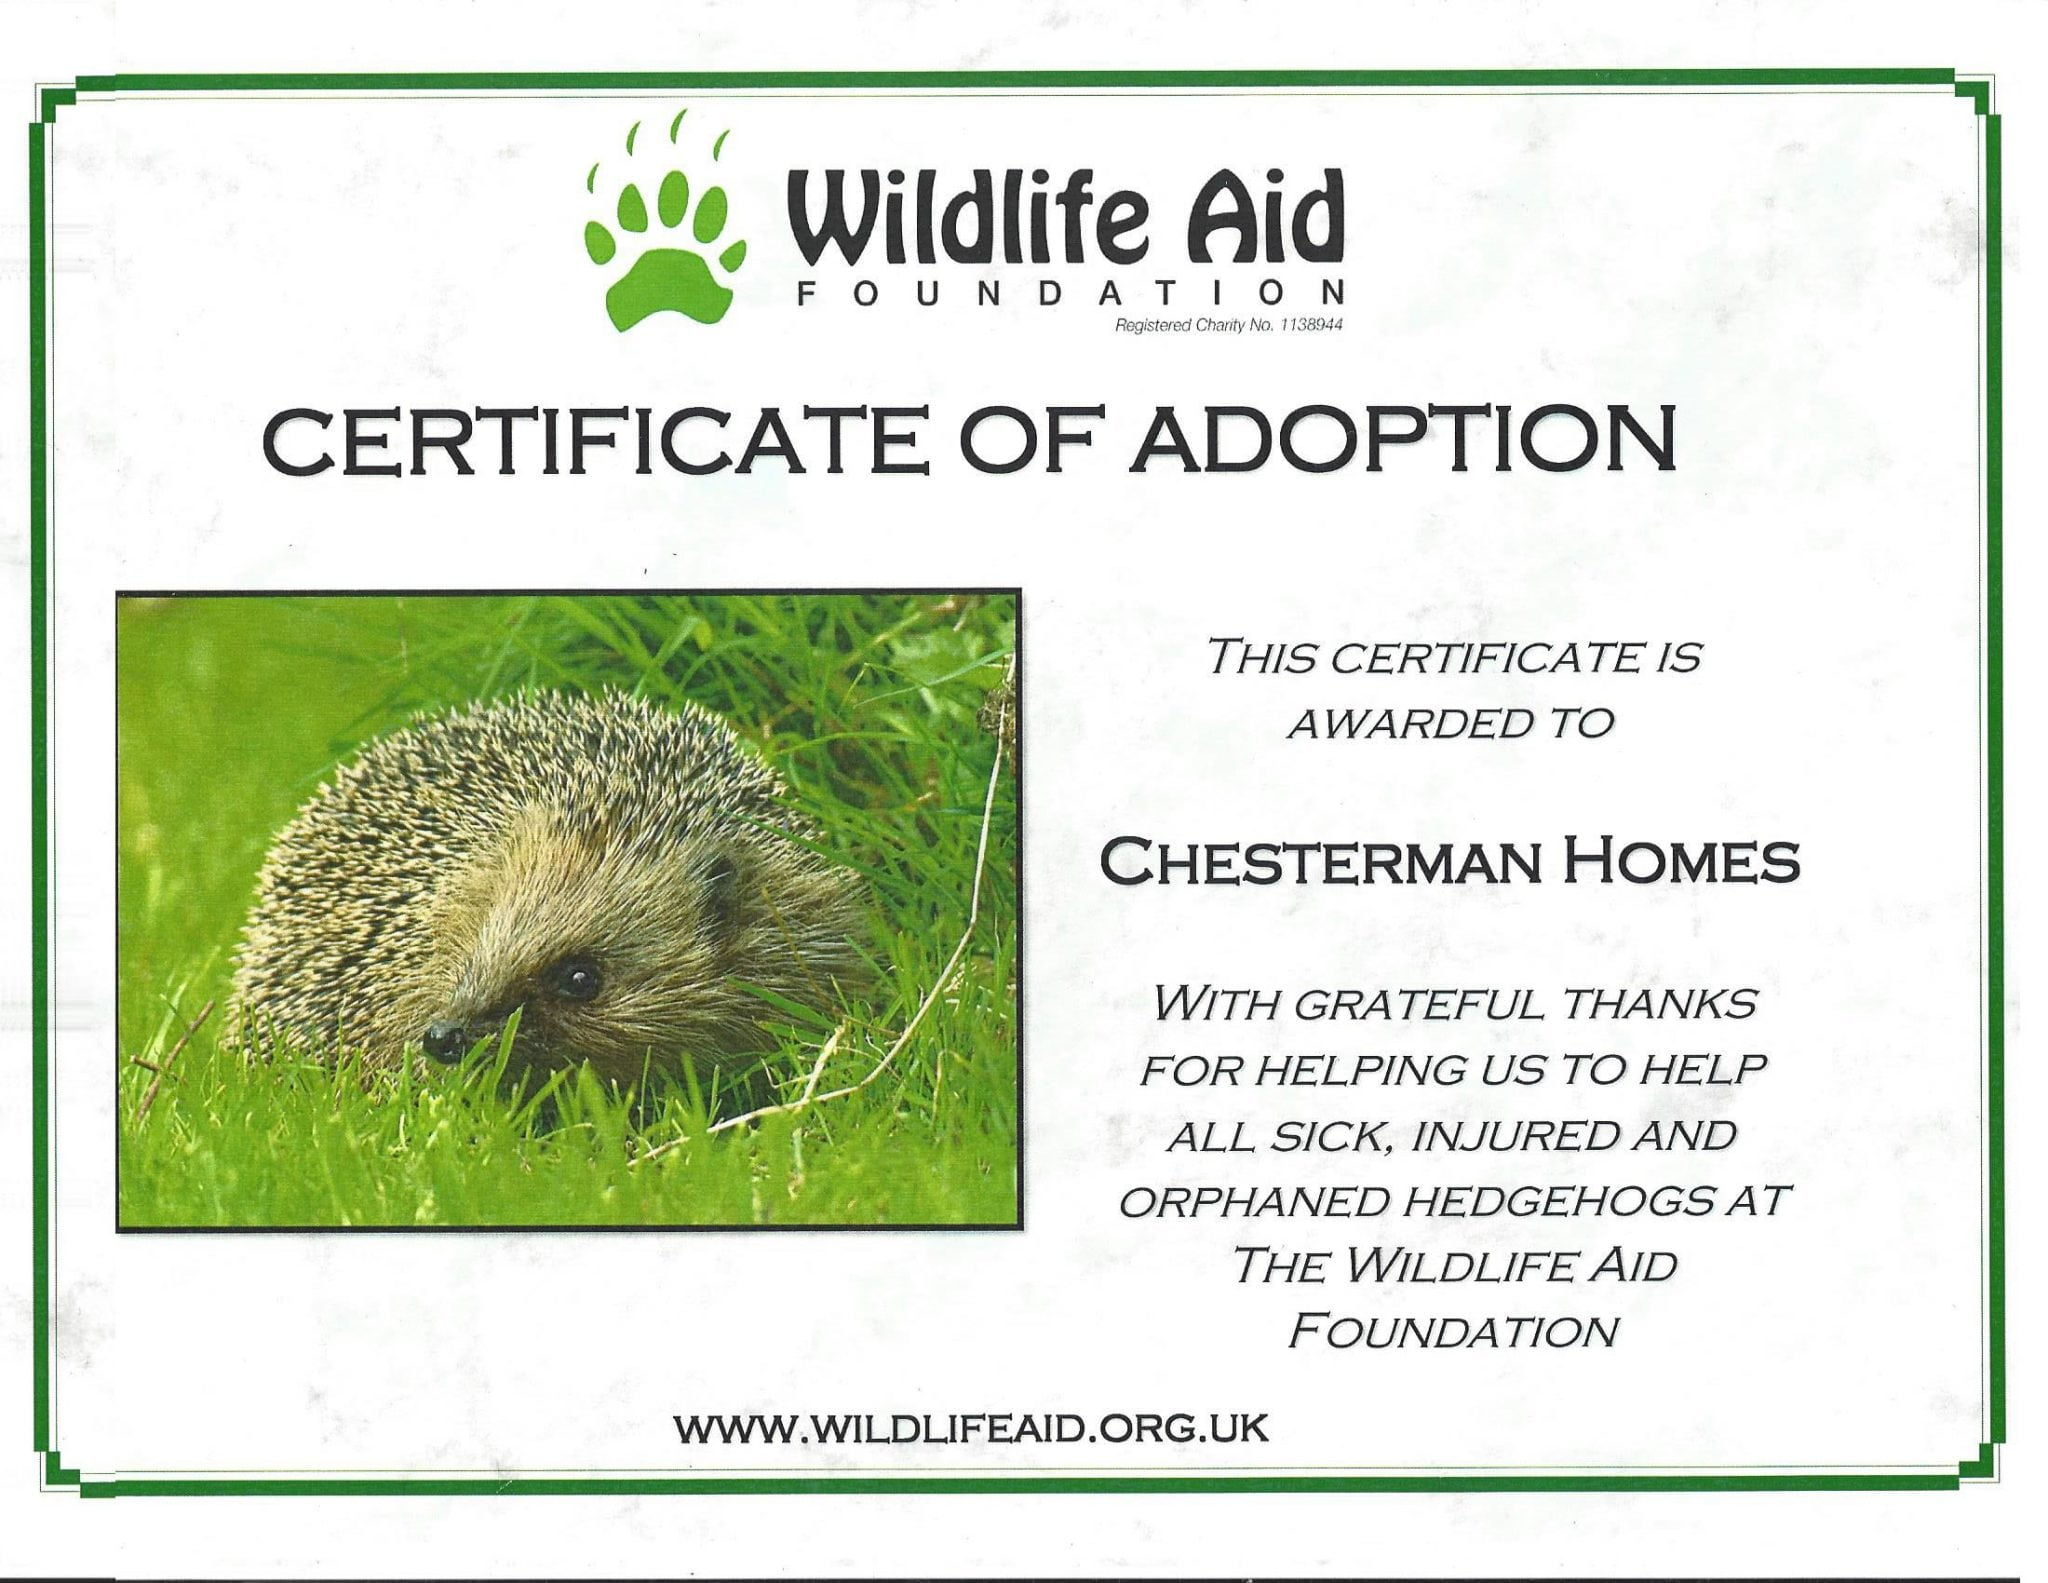 Chesterman Homes - certificate of adoption for hedgehogs